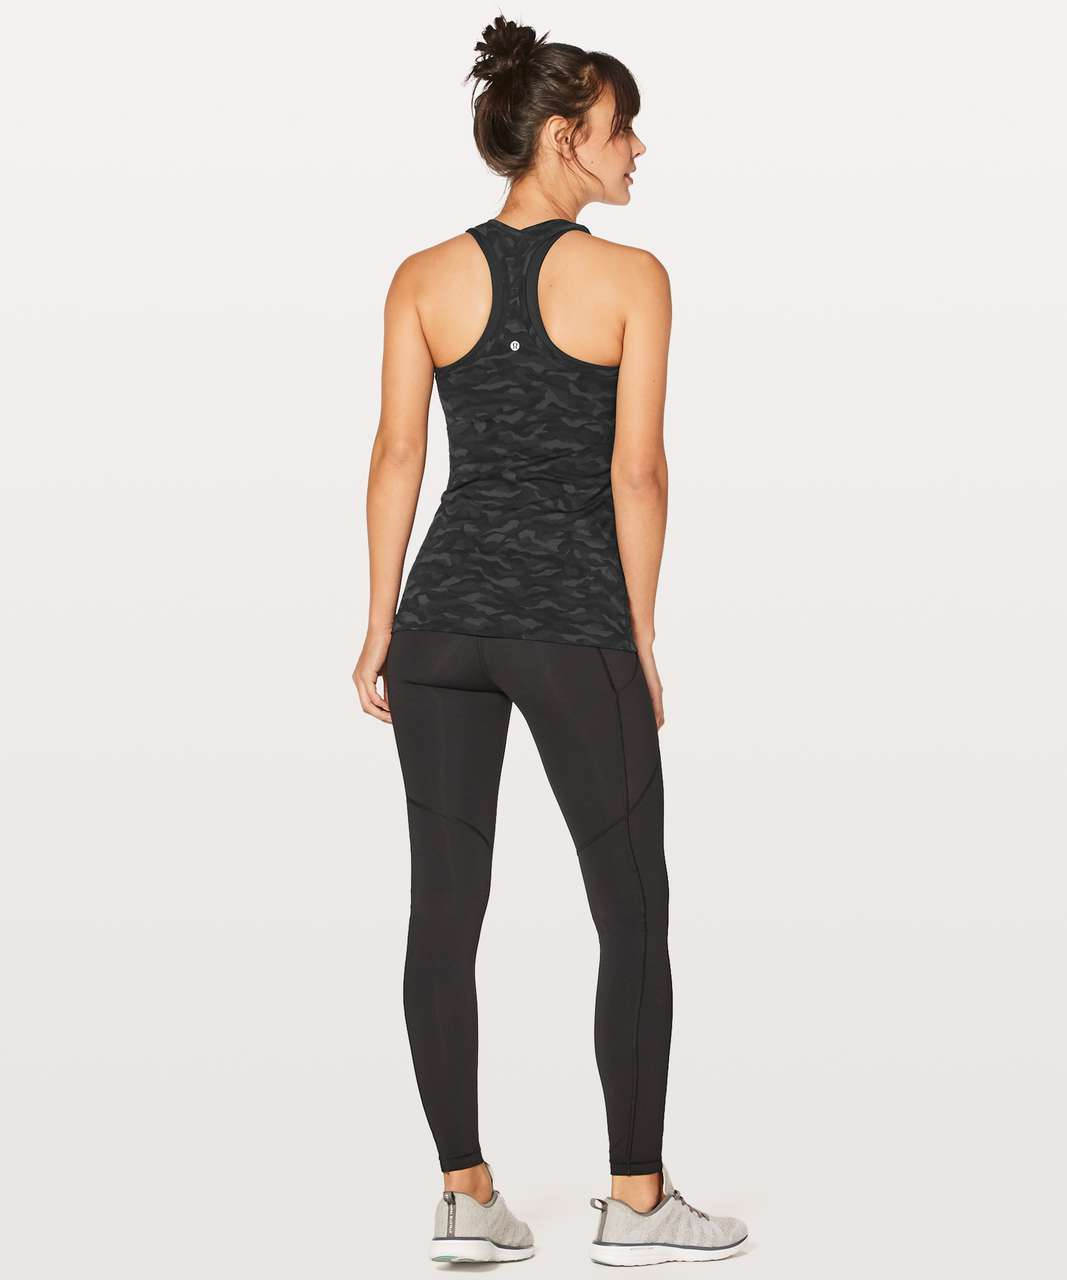 Lululemon Cool Racerback II - Sequoia Camo Print Deep Coal Black (First Release)